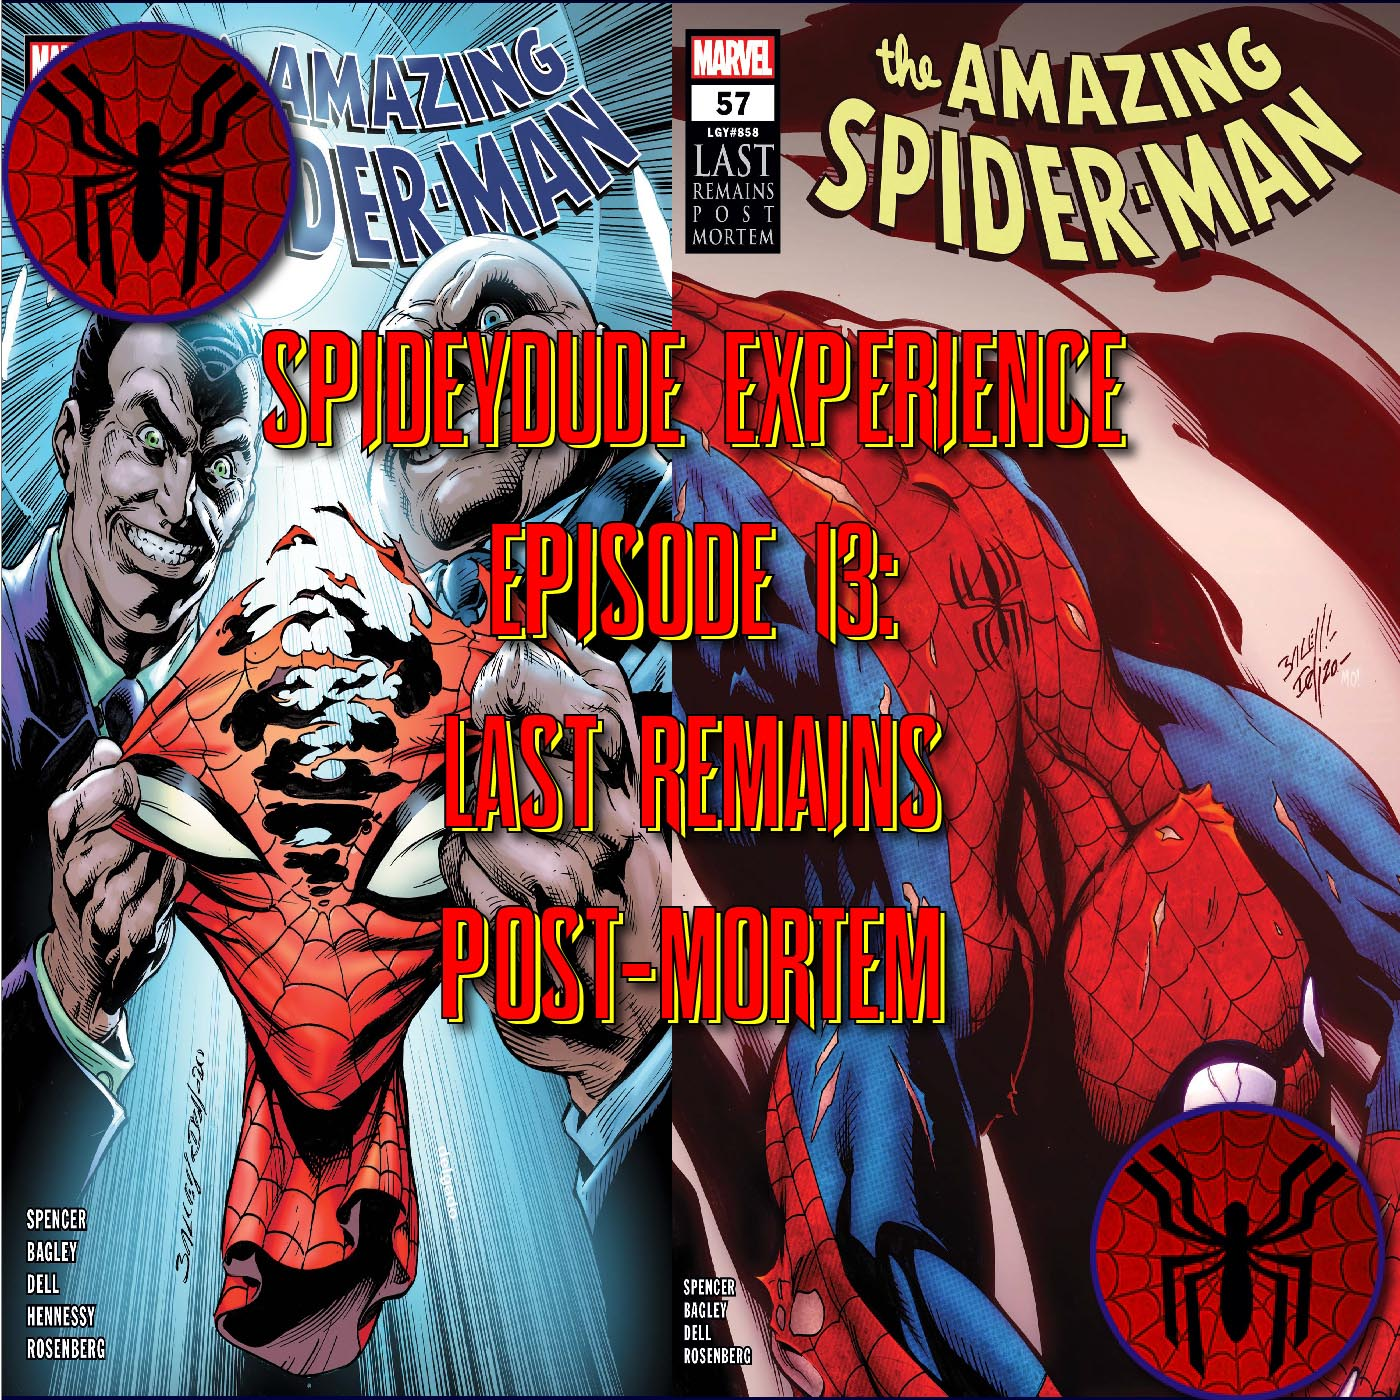 SPIDEYDUDE EXPERIENCE EPISODE 13: ASM 858 and 859